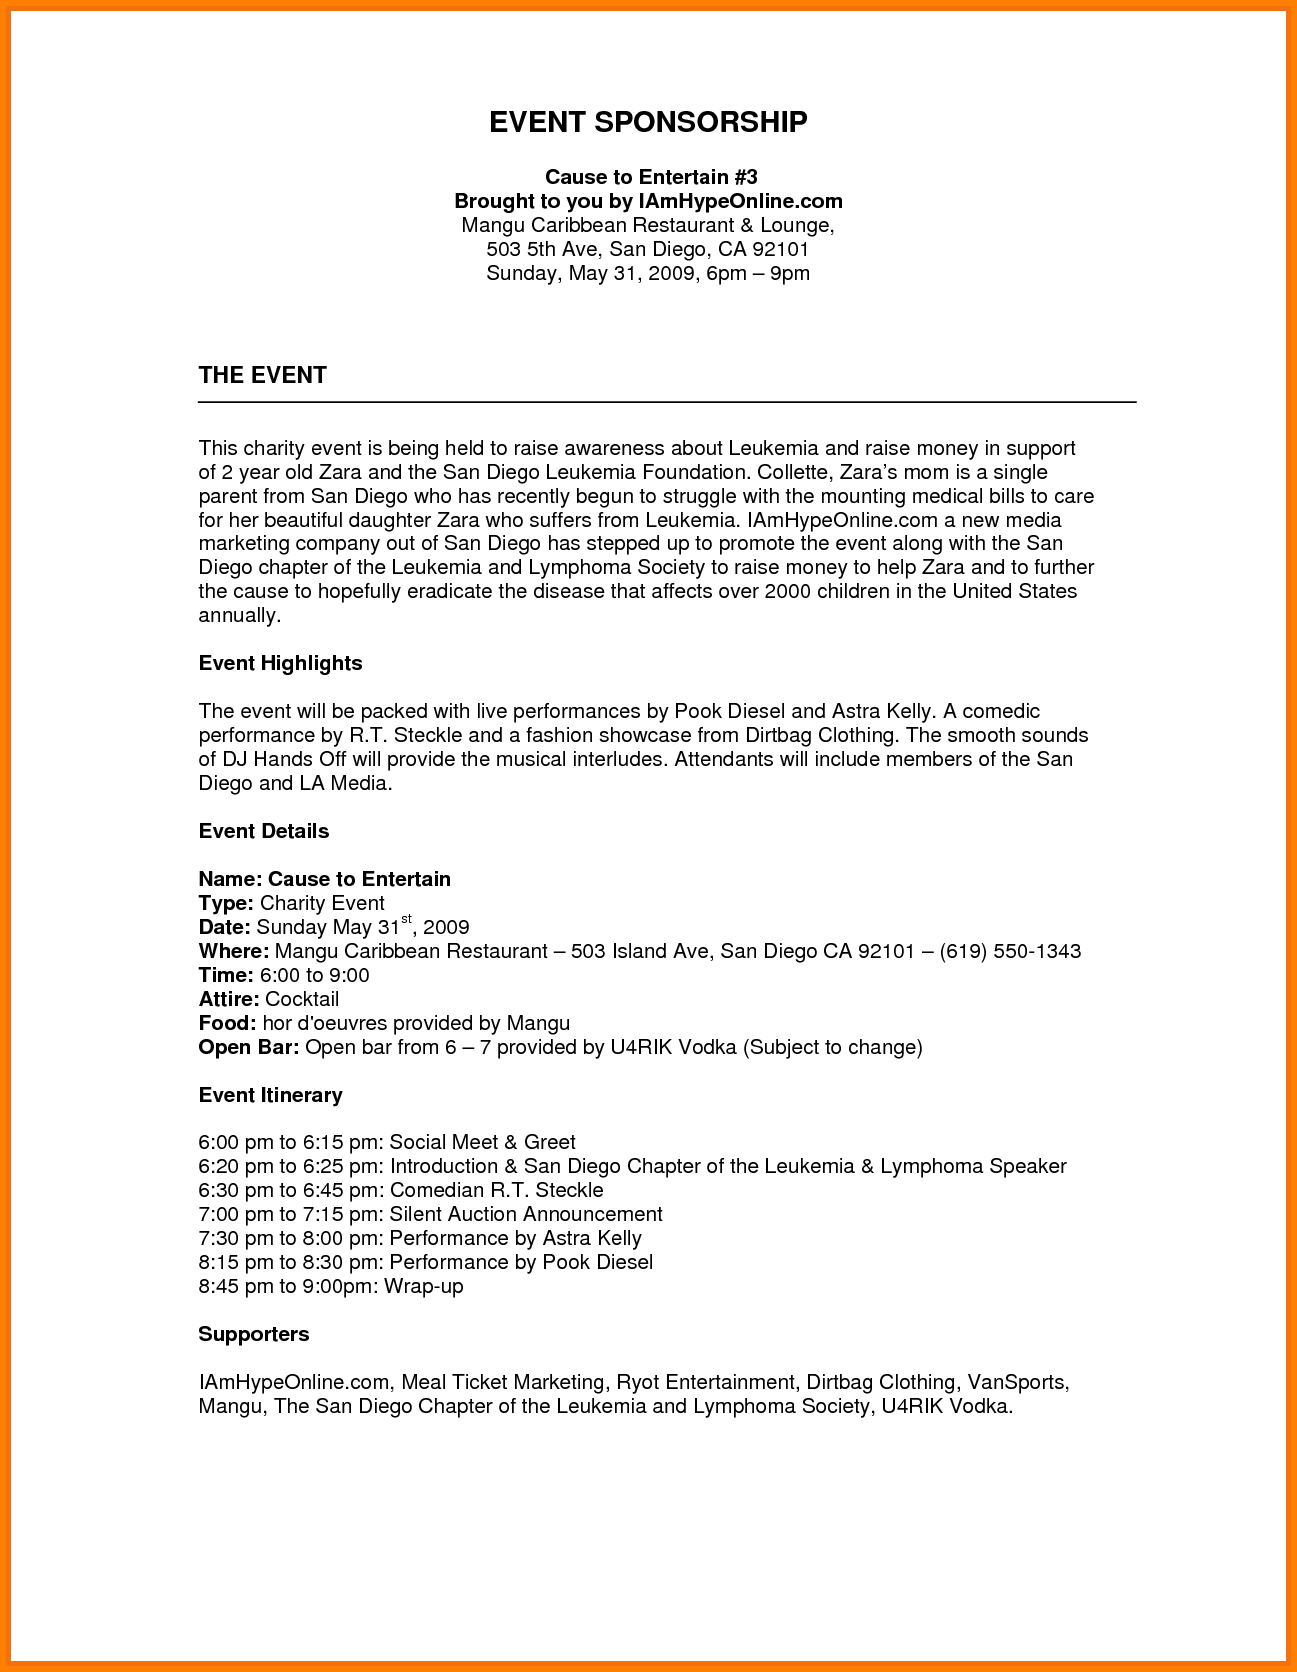 sponsorship proposal letter template Collection-Image result for sponsorship proposal template FinanceTemplate Finance 10-s